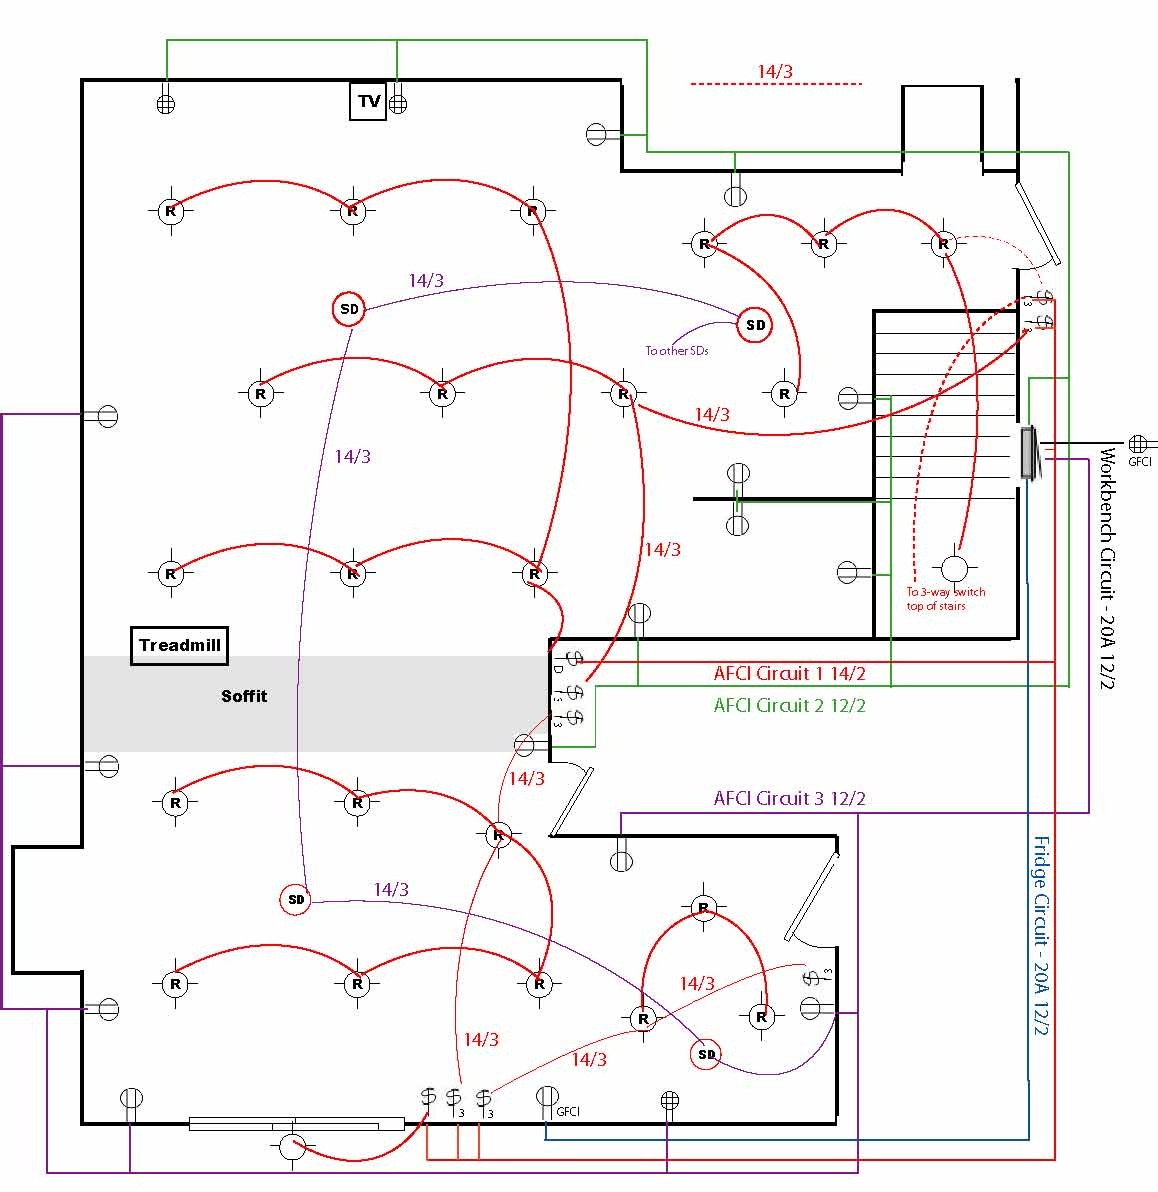 Whole House Wiring Basics - Wiring Diagram Blog - Simple House Wiring Diagram Examples